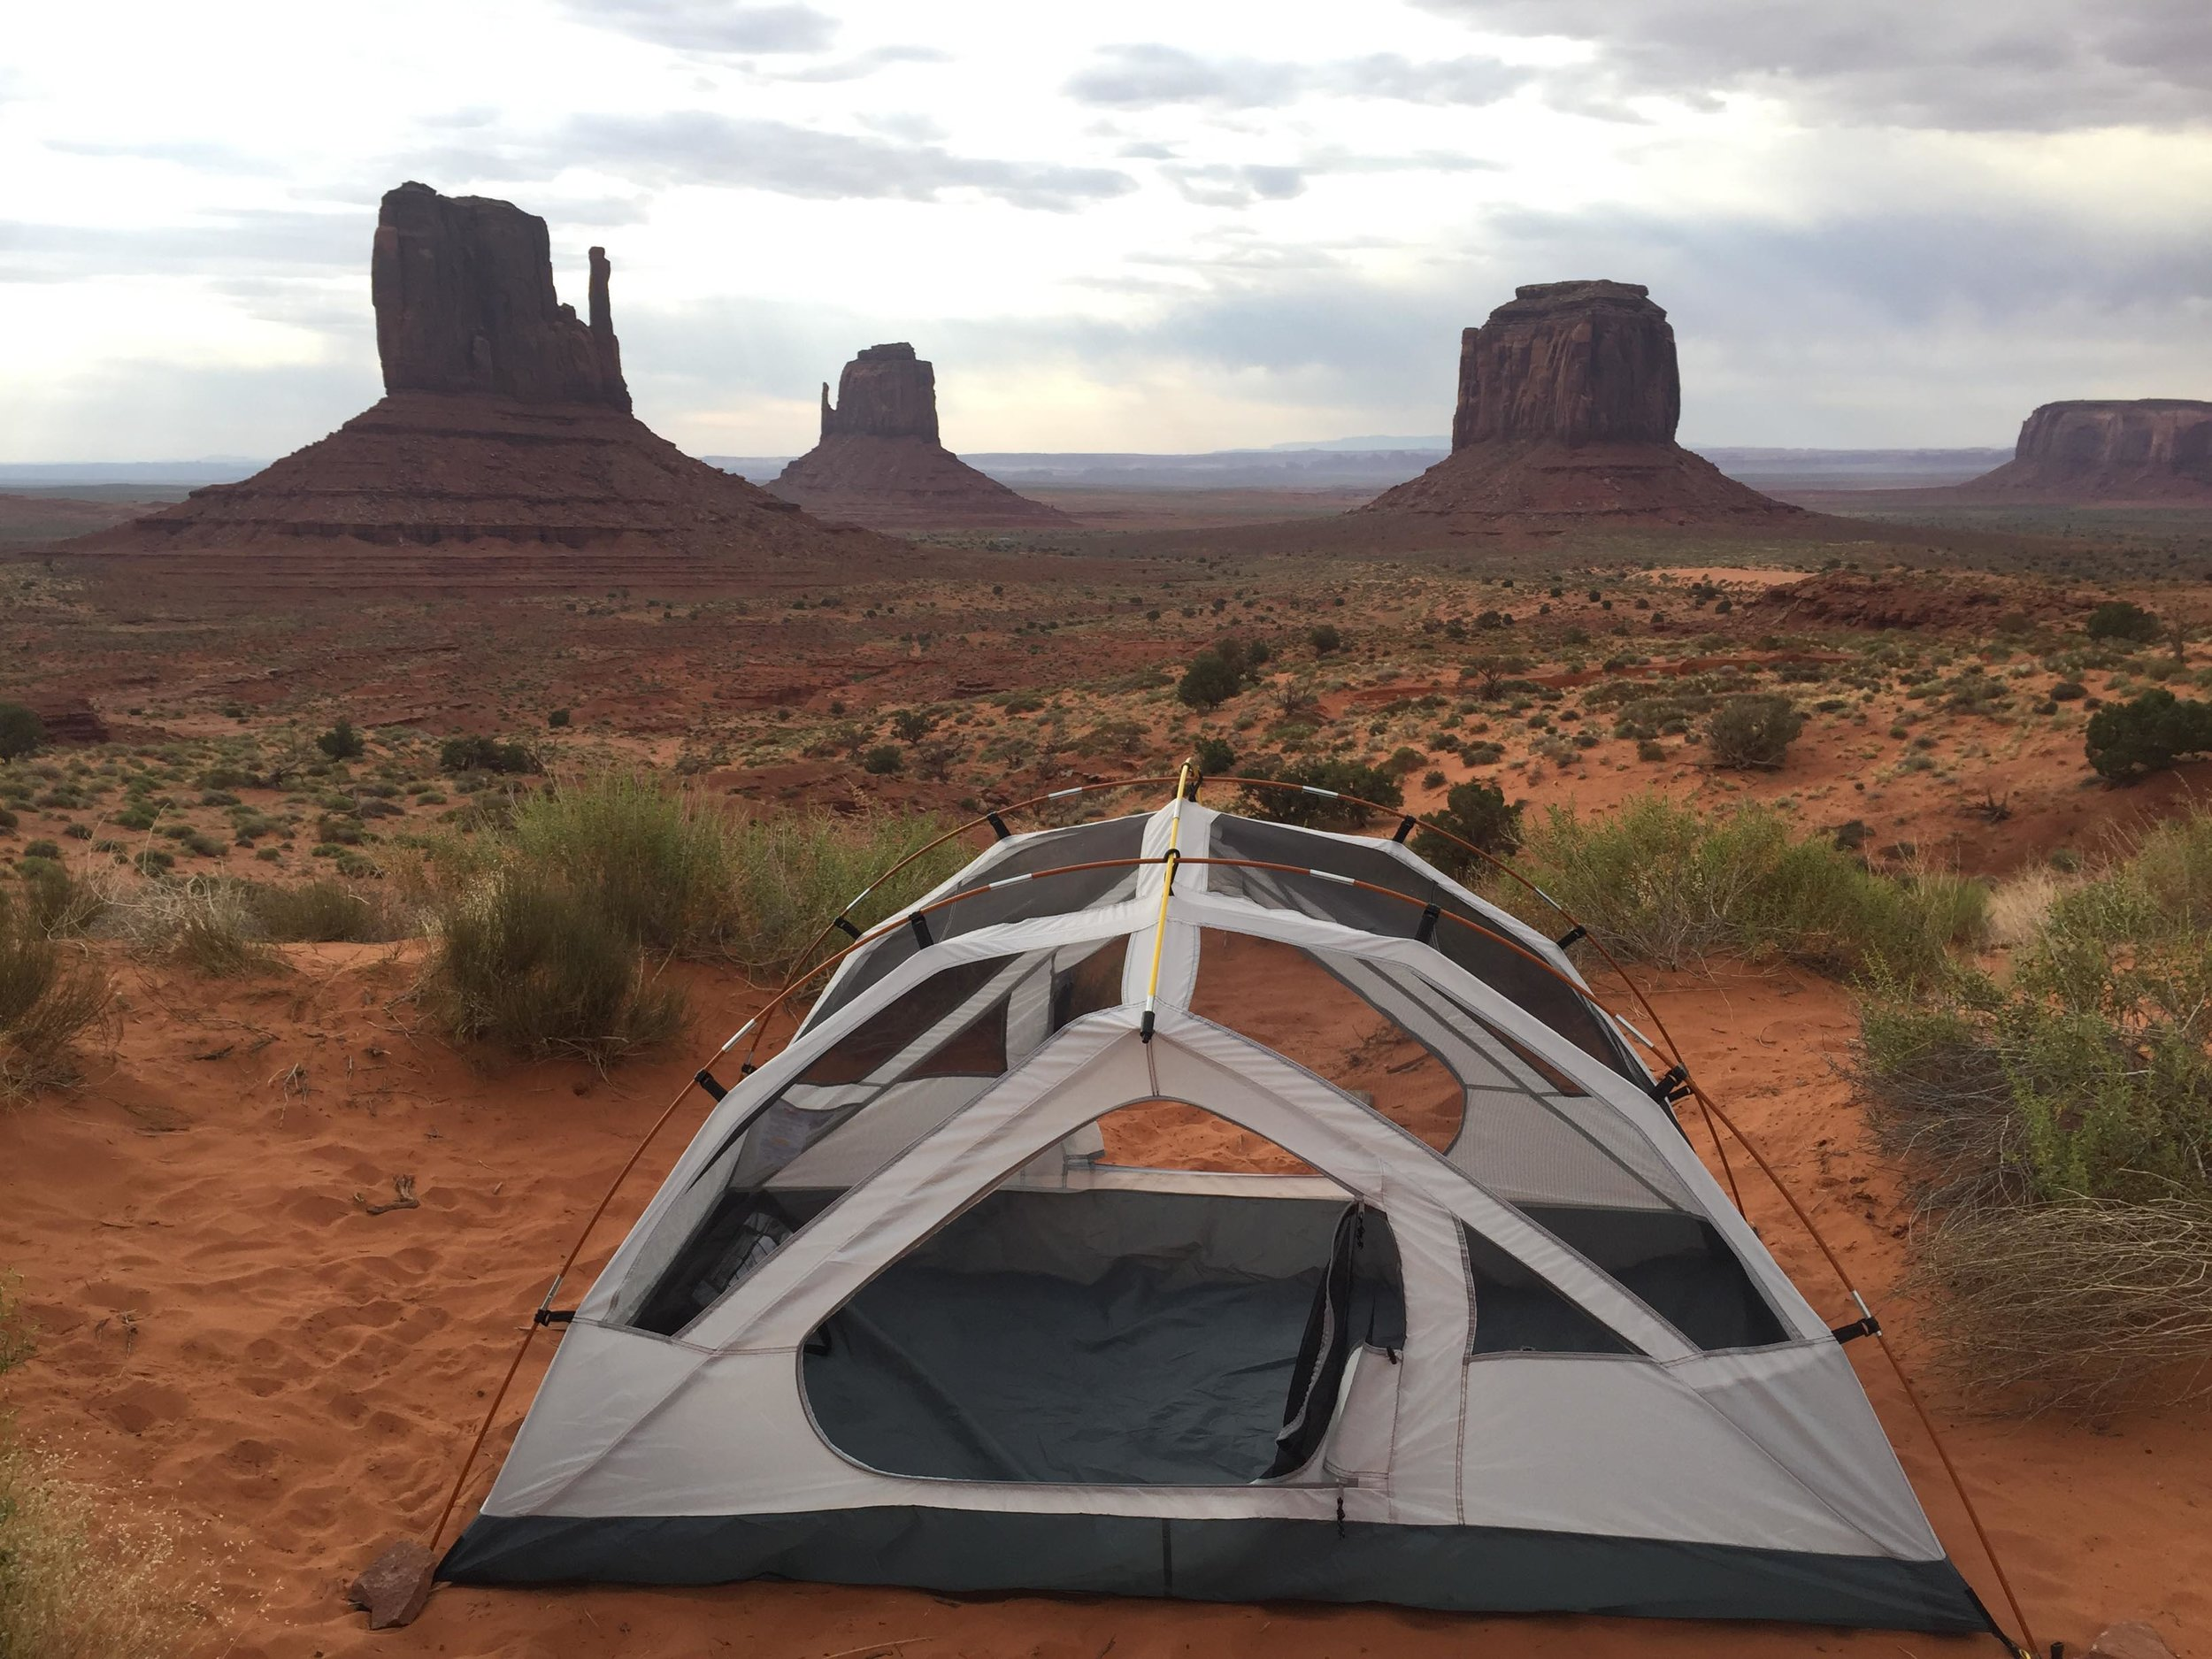 Gaëlle and Noëmie's tent in the middle of Monument Valley.